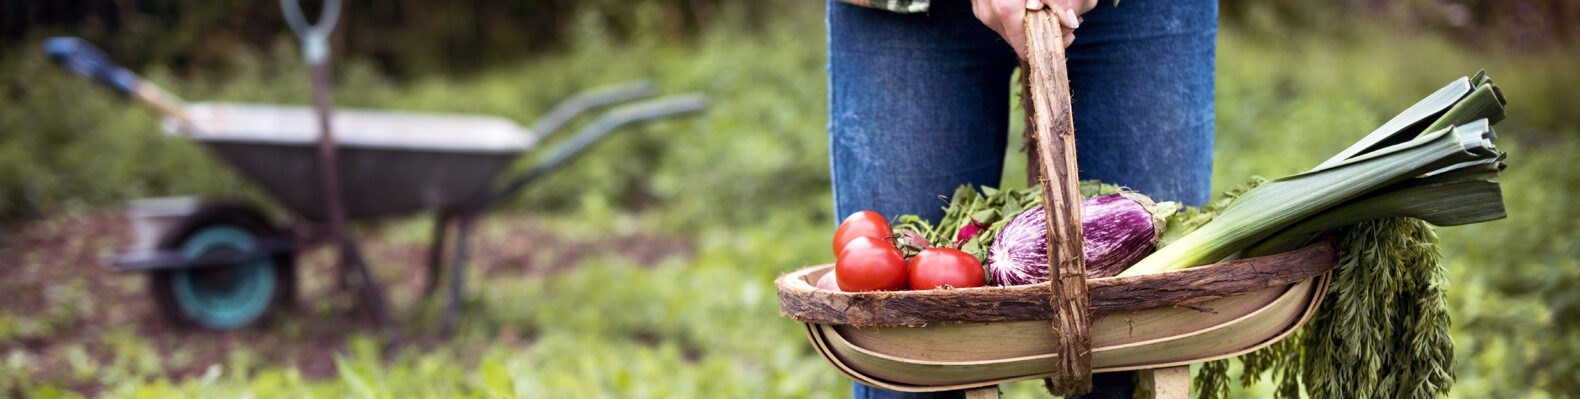 person standing and holding basket of fresh veggies in a garden